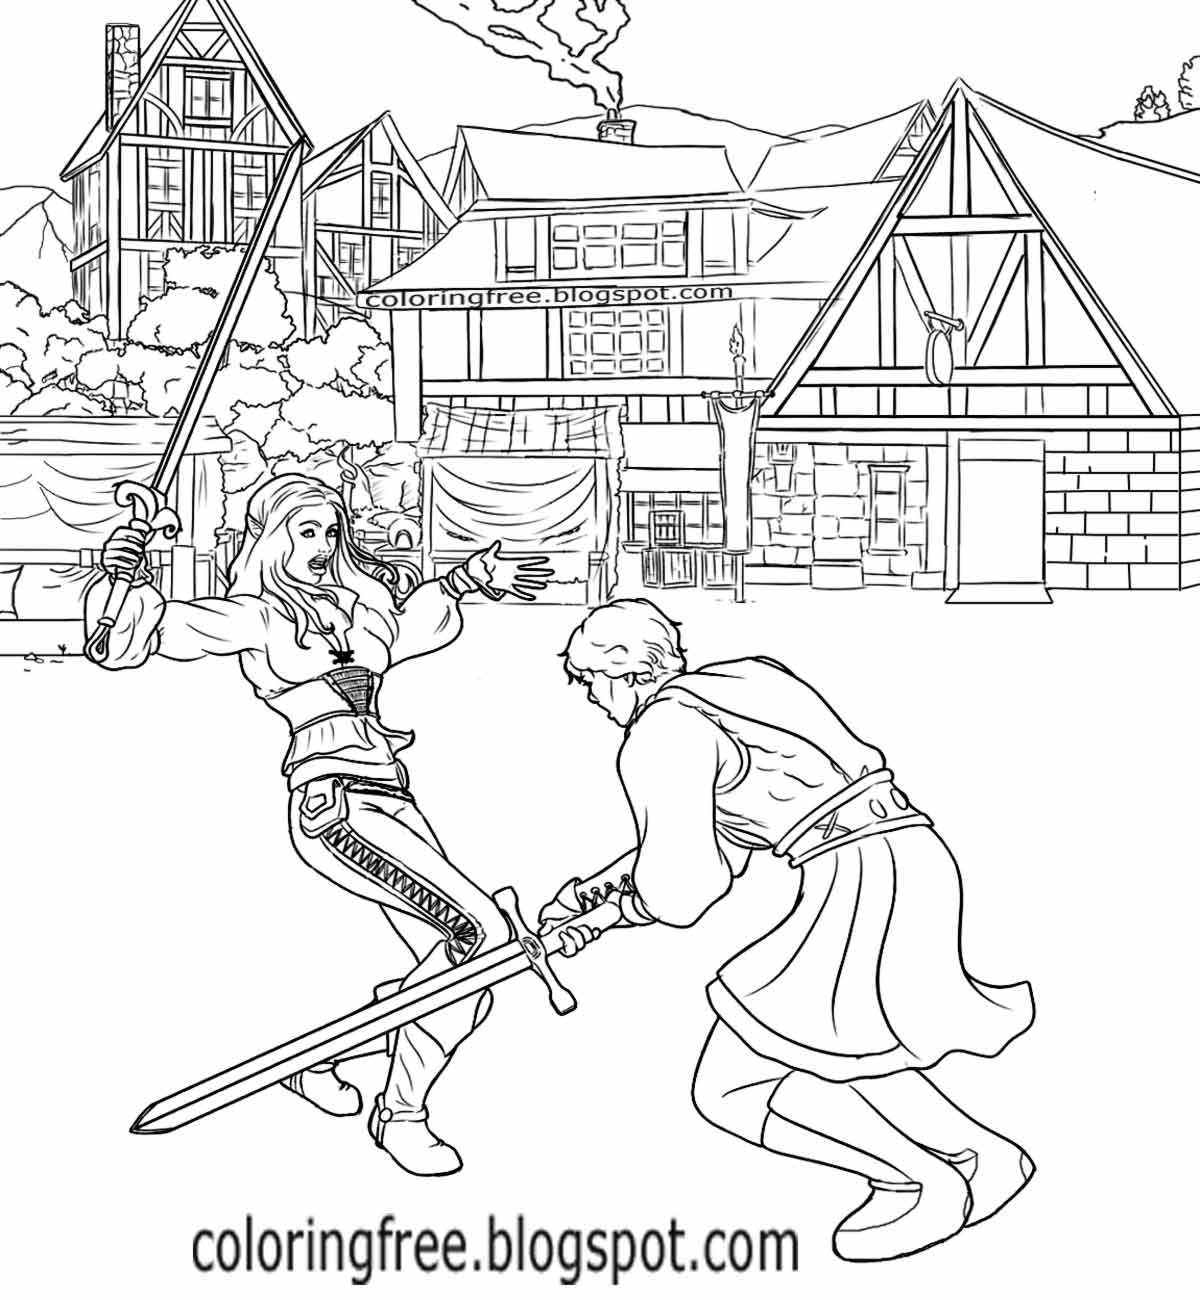 1200x1300 Free Coloring Pages Printable Pictures To Color Kids Drawing Ideas